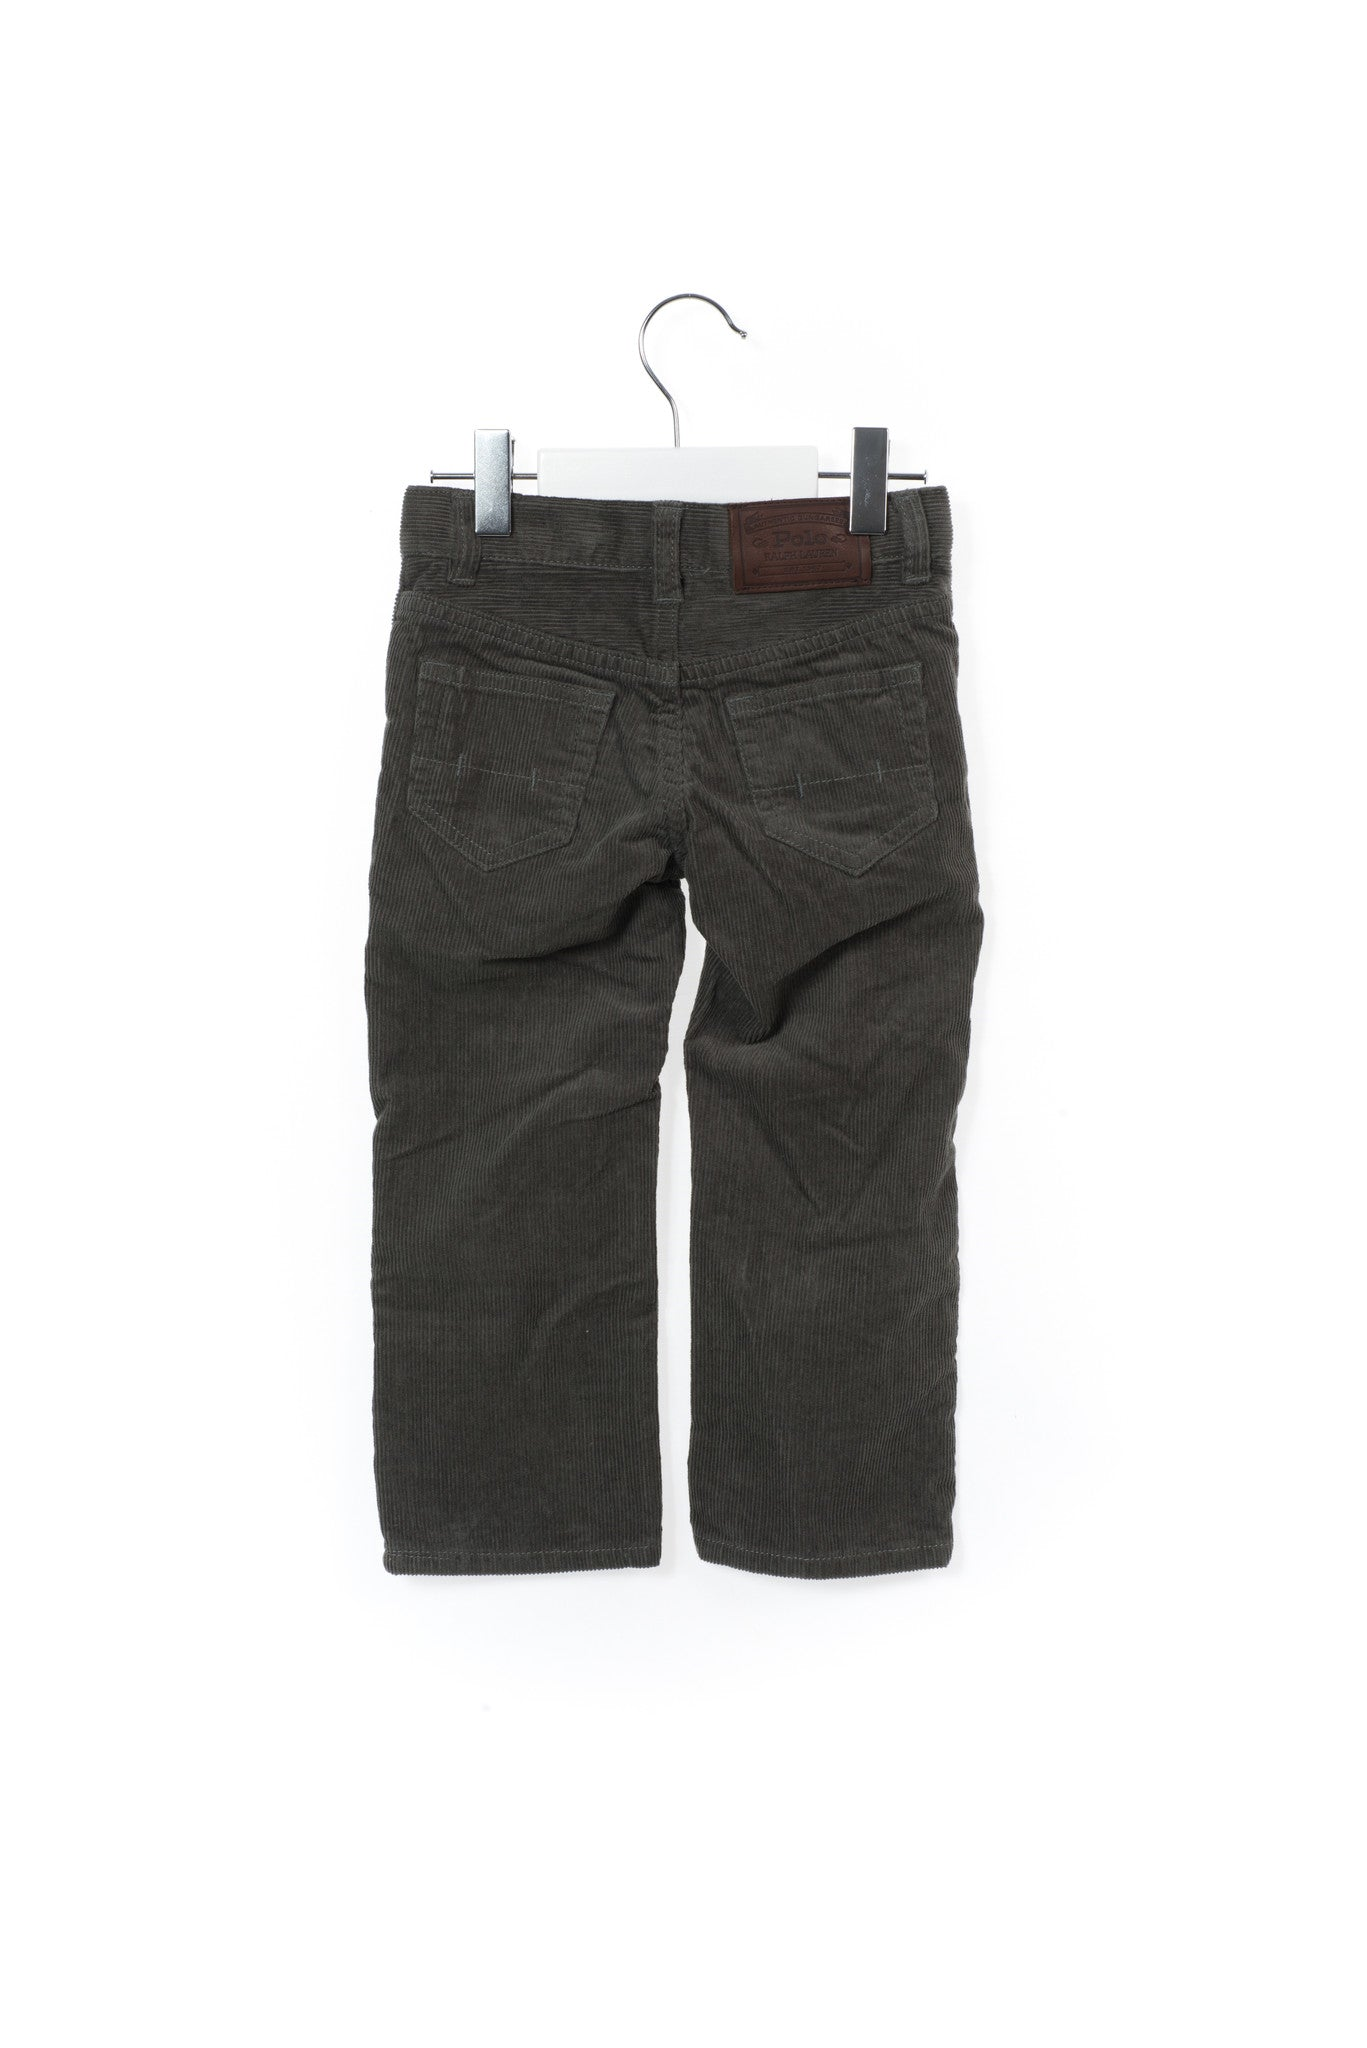 10001106 Polo Ralph Lauren Kids~Pants 2T at Retykle